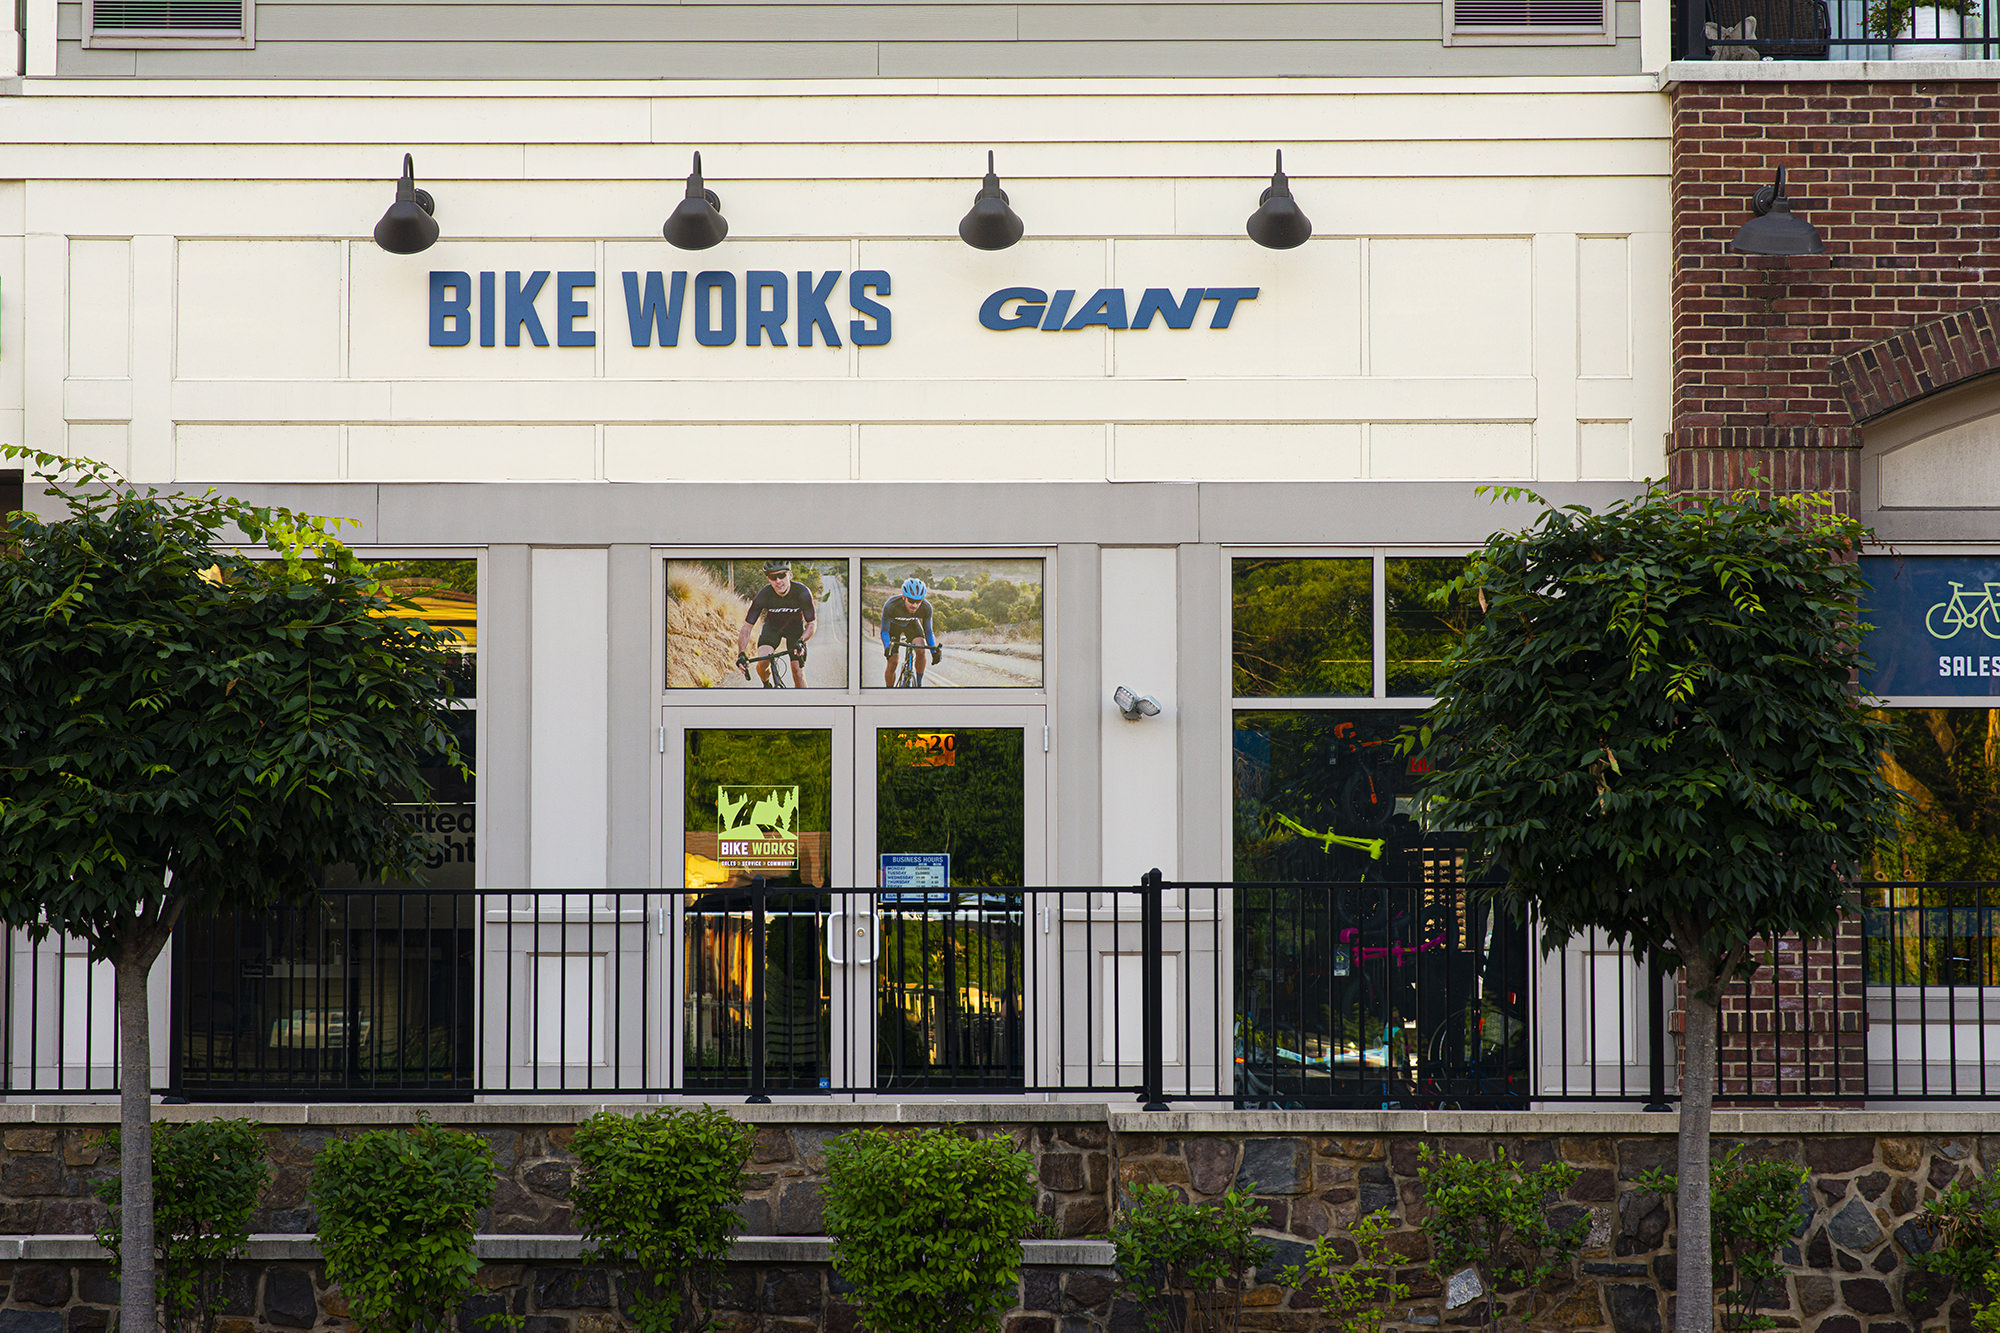 Bike Works opens their Newtown location with Giant Bicyles